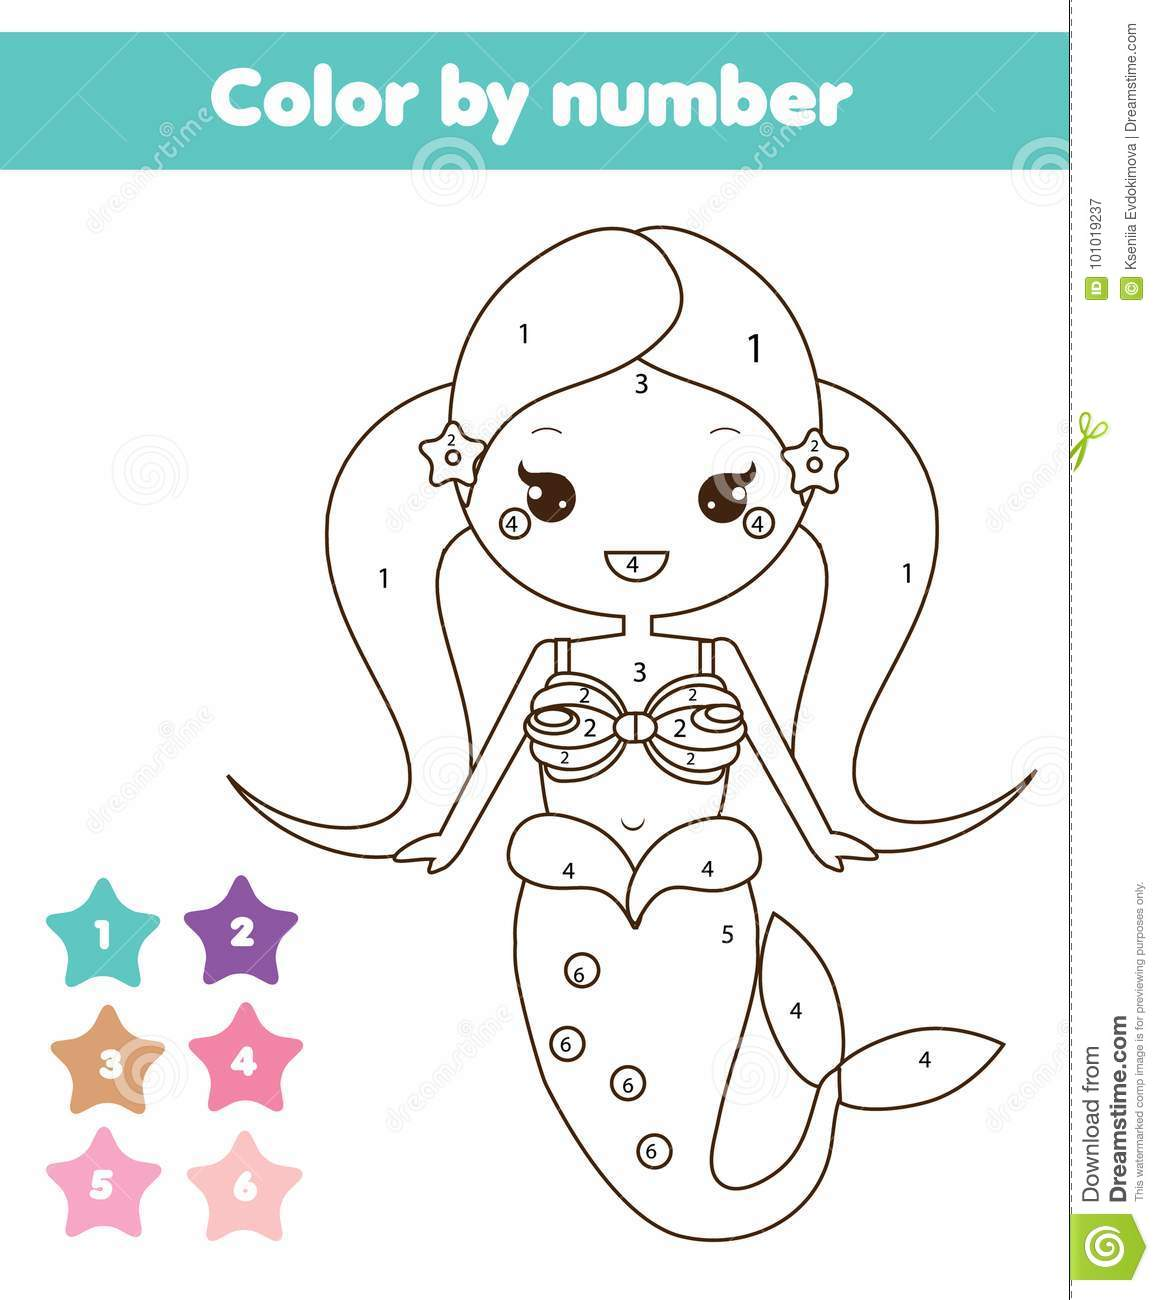 Children Educational Game Coloring Page With Mermaid